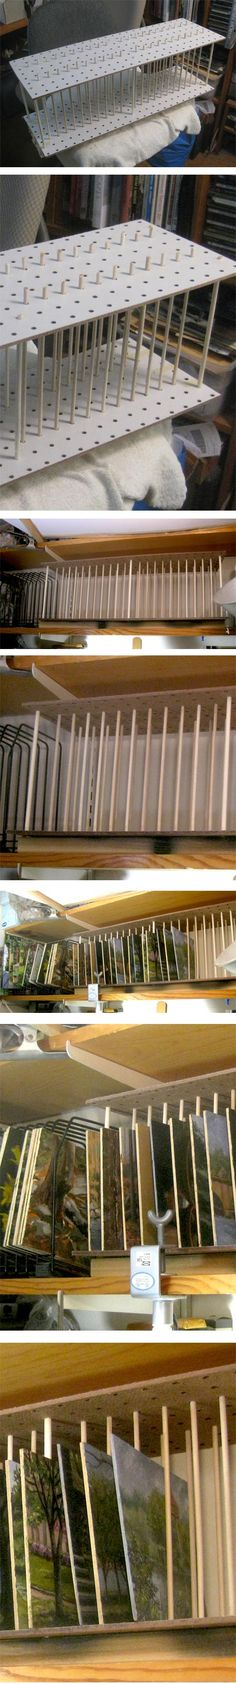 diy painting storage rack (peg board and dowels) http://linesandcolors.com/2014/03/15/a-simple-diy-drying-rack-for-plein-air-panels-and-small-paintings/